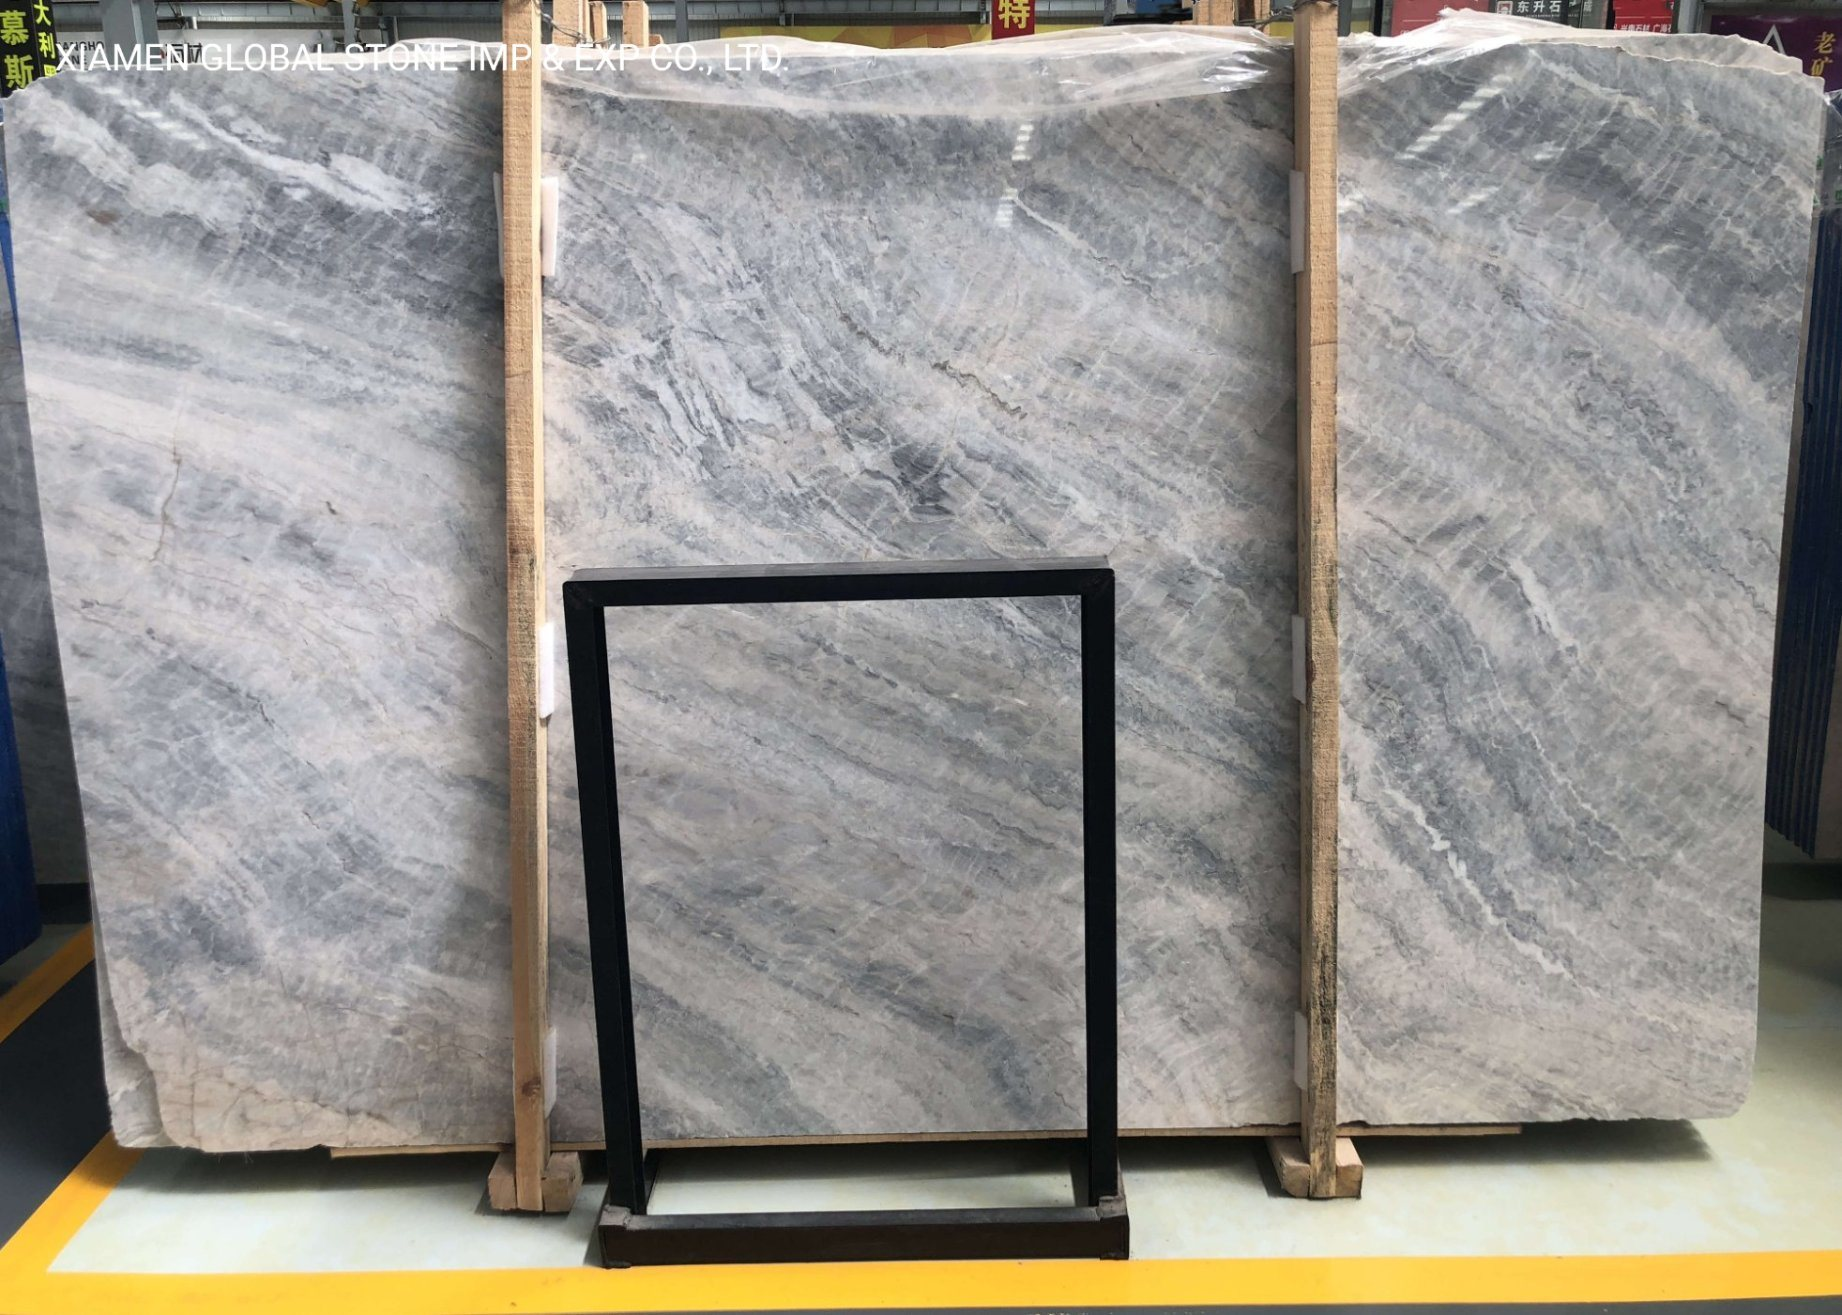 China Good Price Ash Roman Gray White Beige Black Marble For Countertop Kitchen Bathroom Floor Wall Tiles China Cut To Size Tiles Marble Countertop